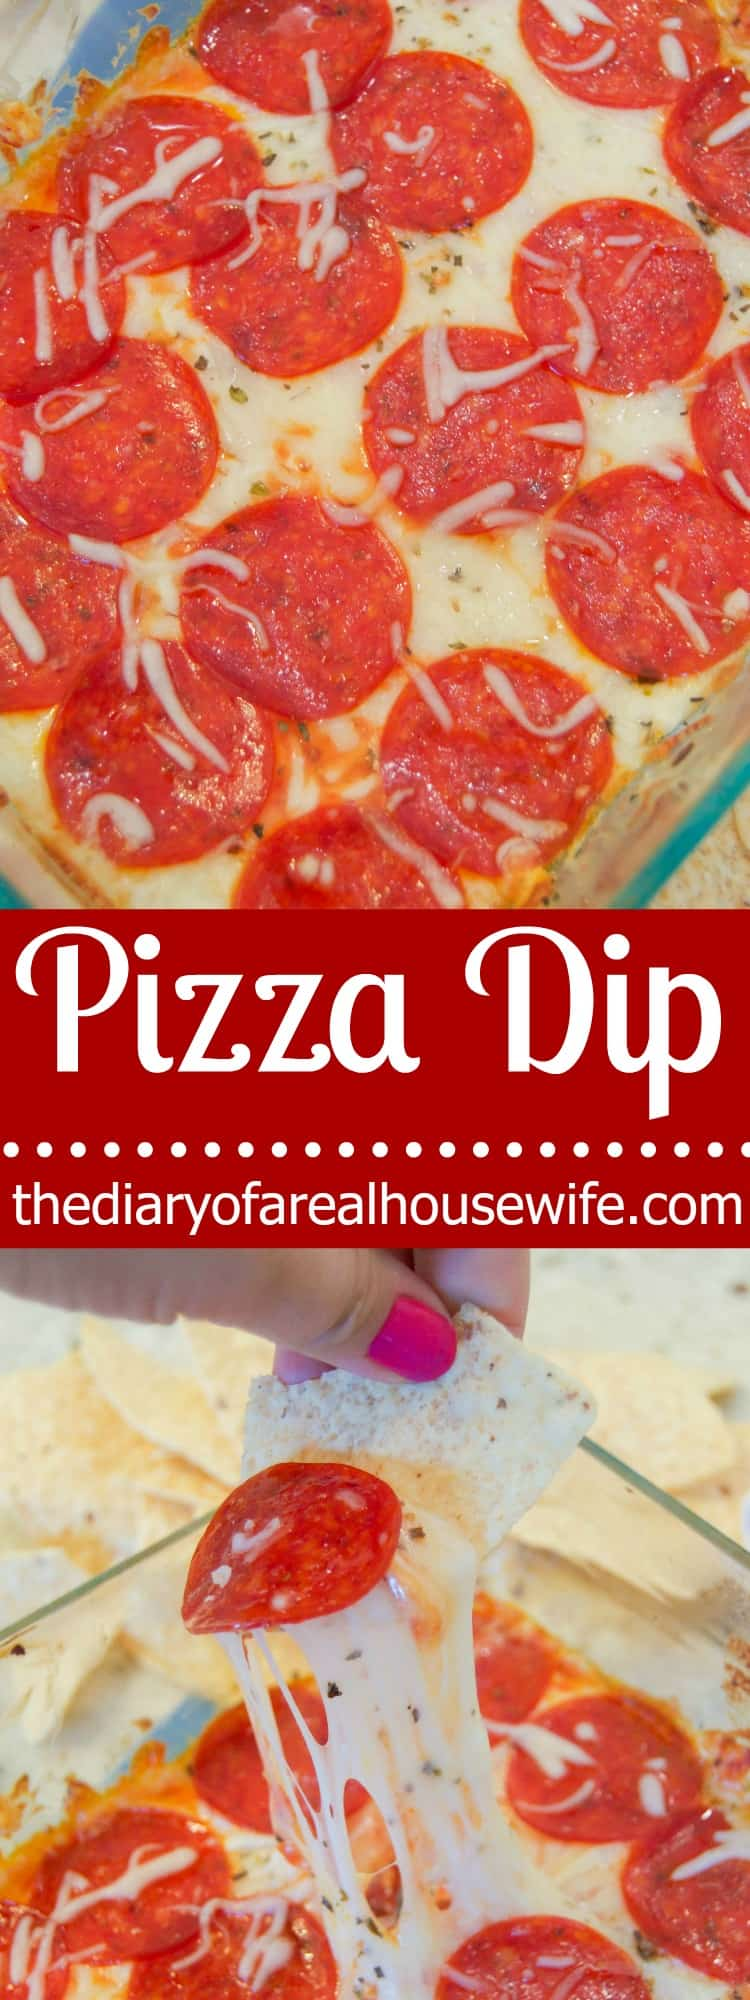 awesome-pizza-dip-recipe-i-loved-this-one-and-it-really-wowed-my-guest-a-crowed-favorite-for-sure